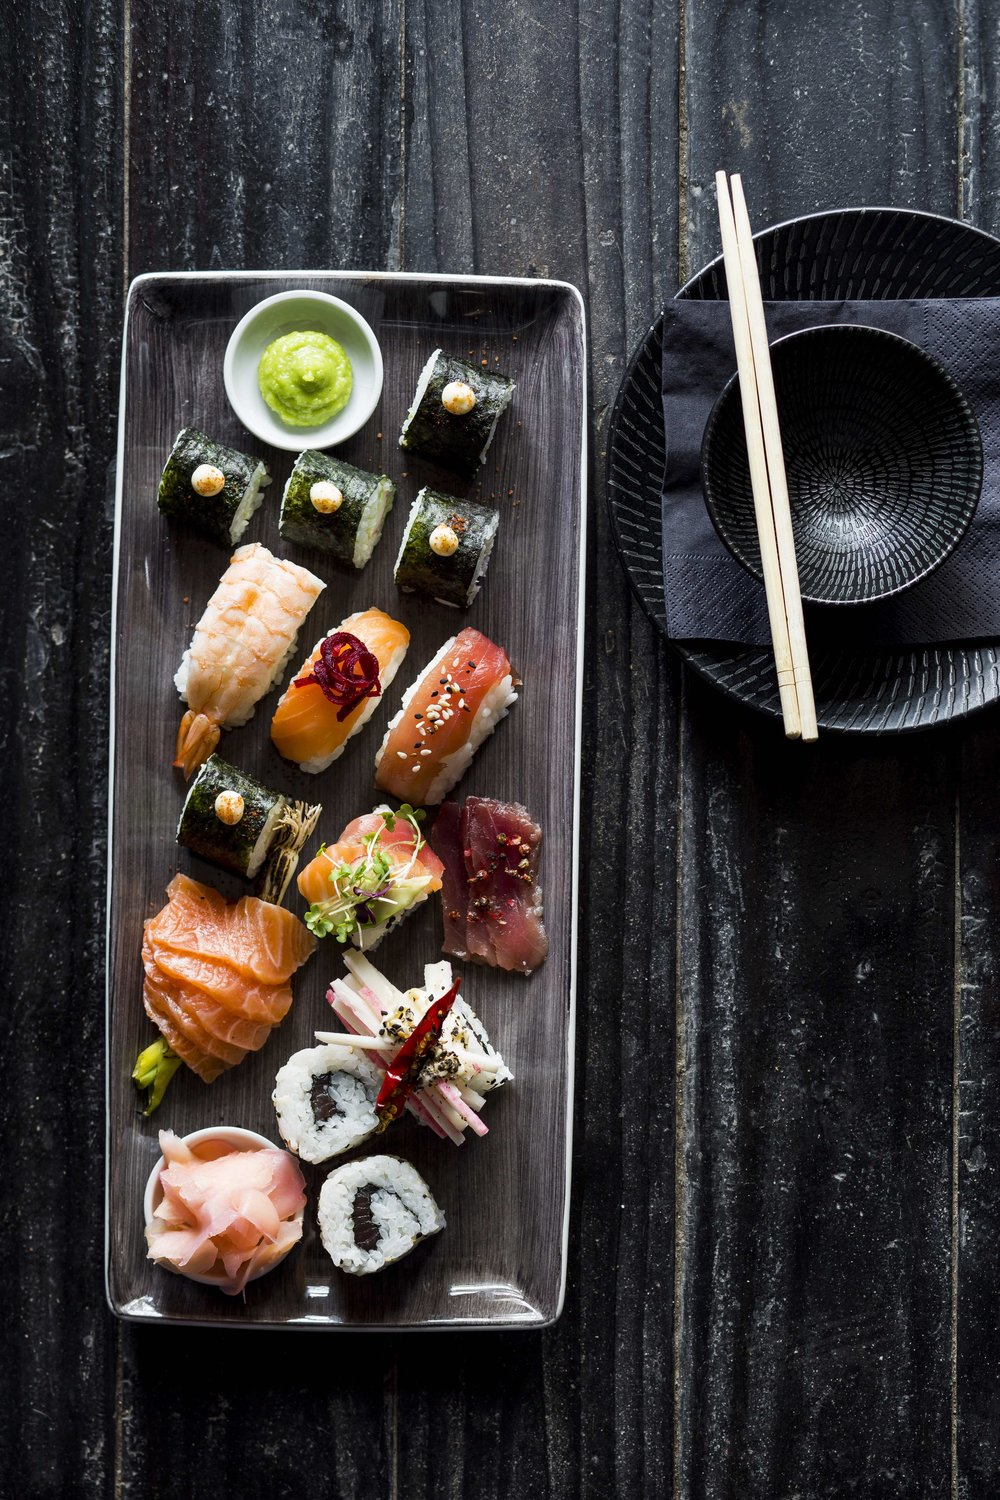 A selection of sushi. Image by Michael le Grange